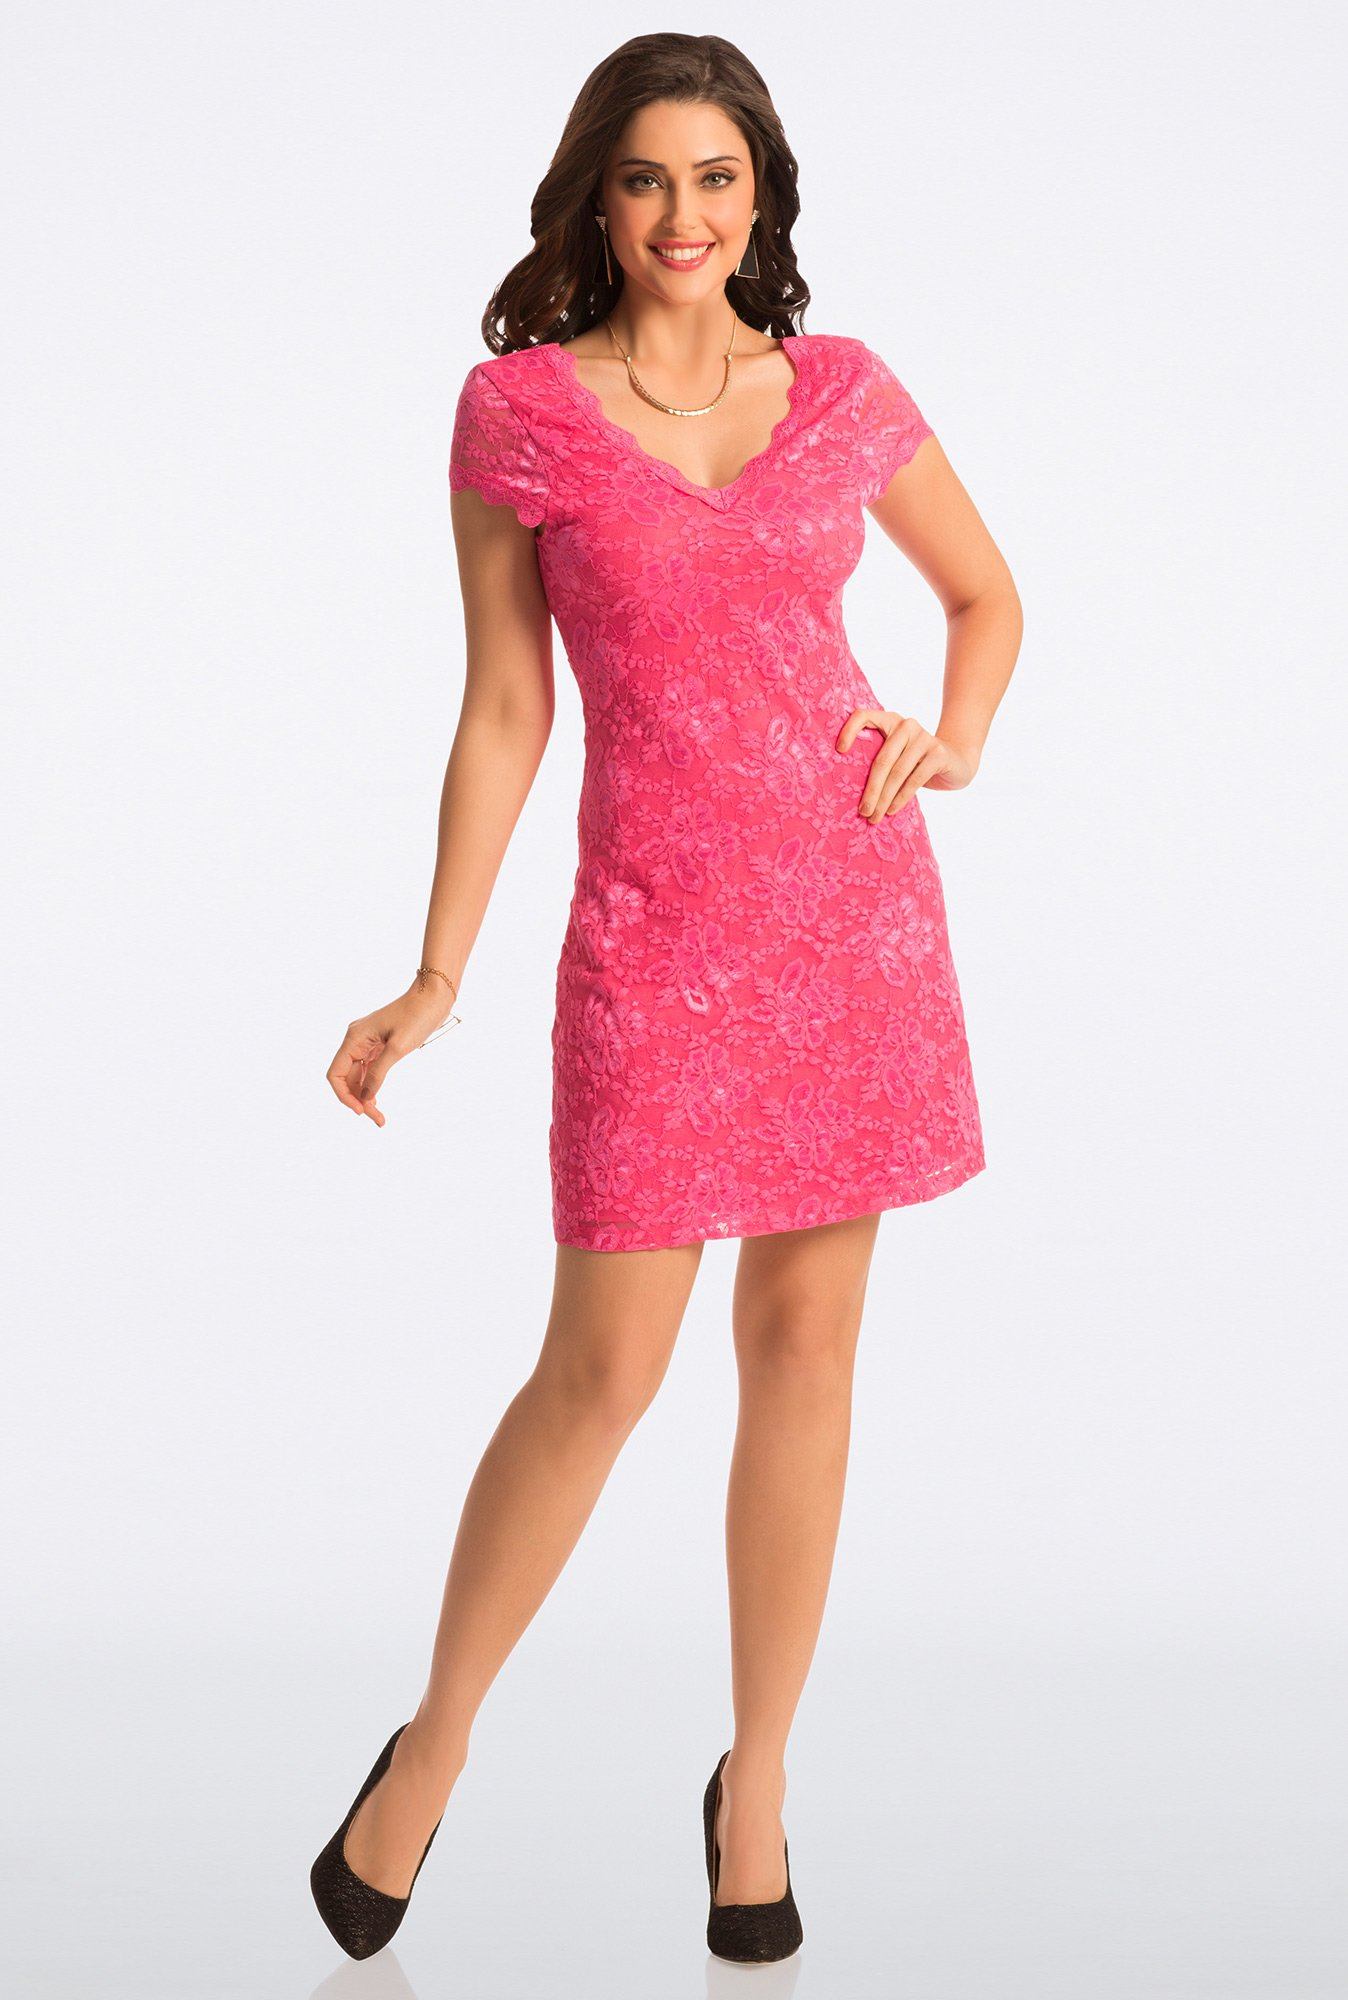 PrettySecrets Candy Pink Lace Bodycon Dress